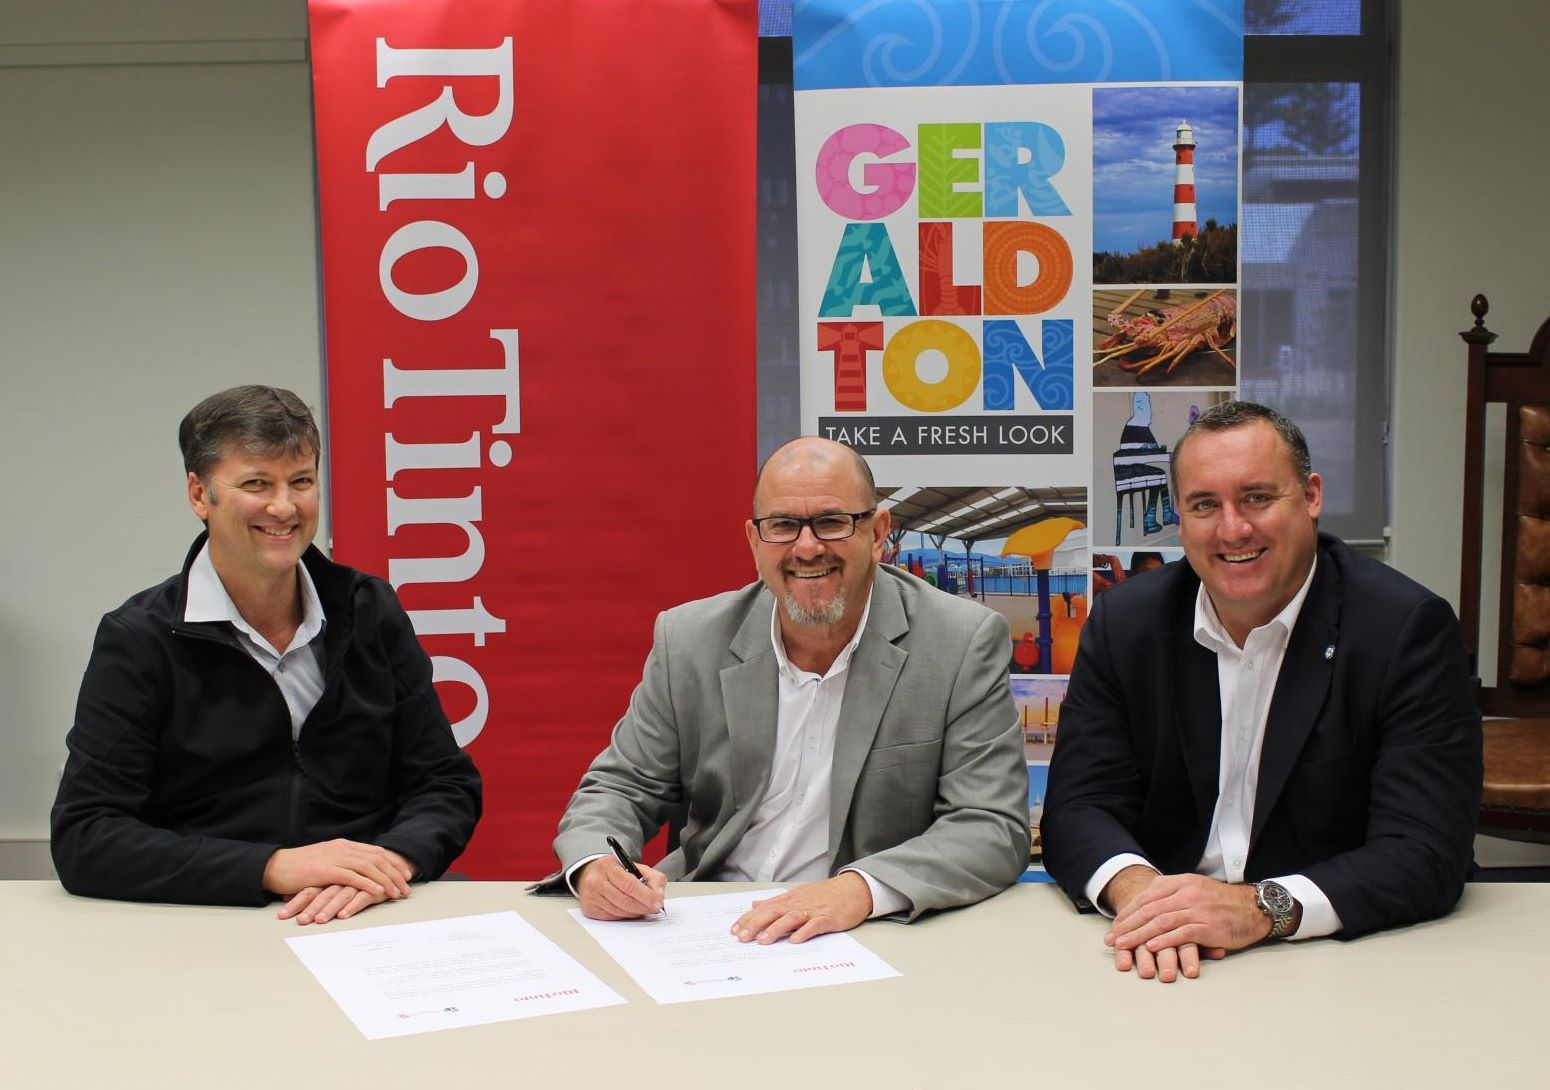 Youth Vibrancy Officer jointly funded by Rio Tinto